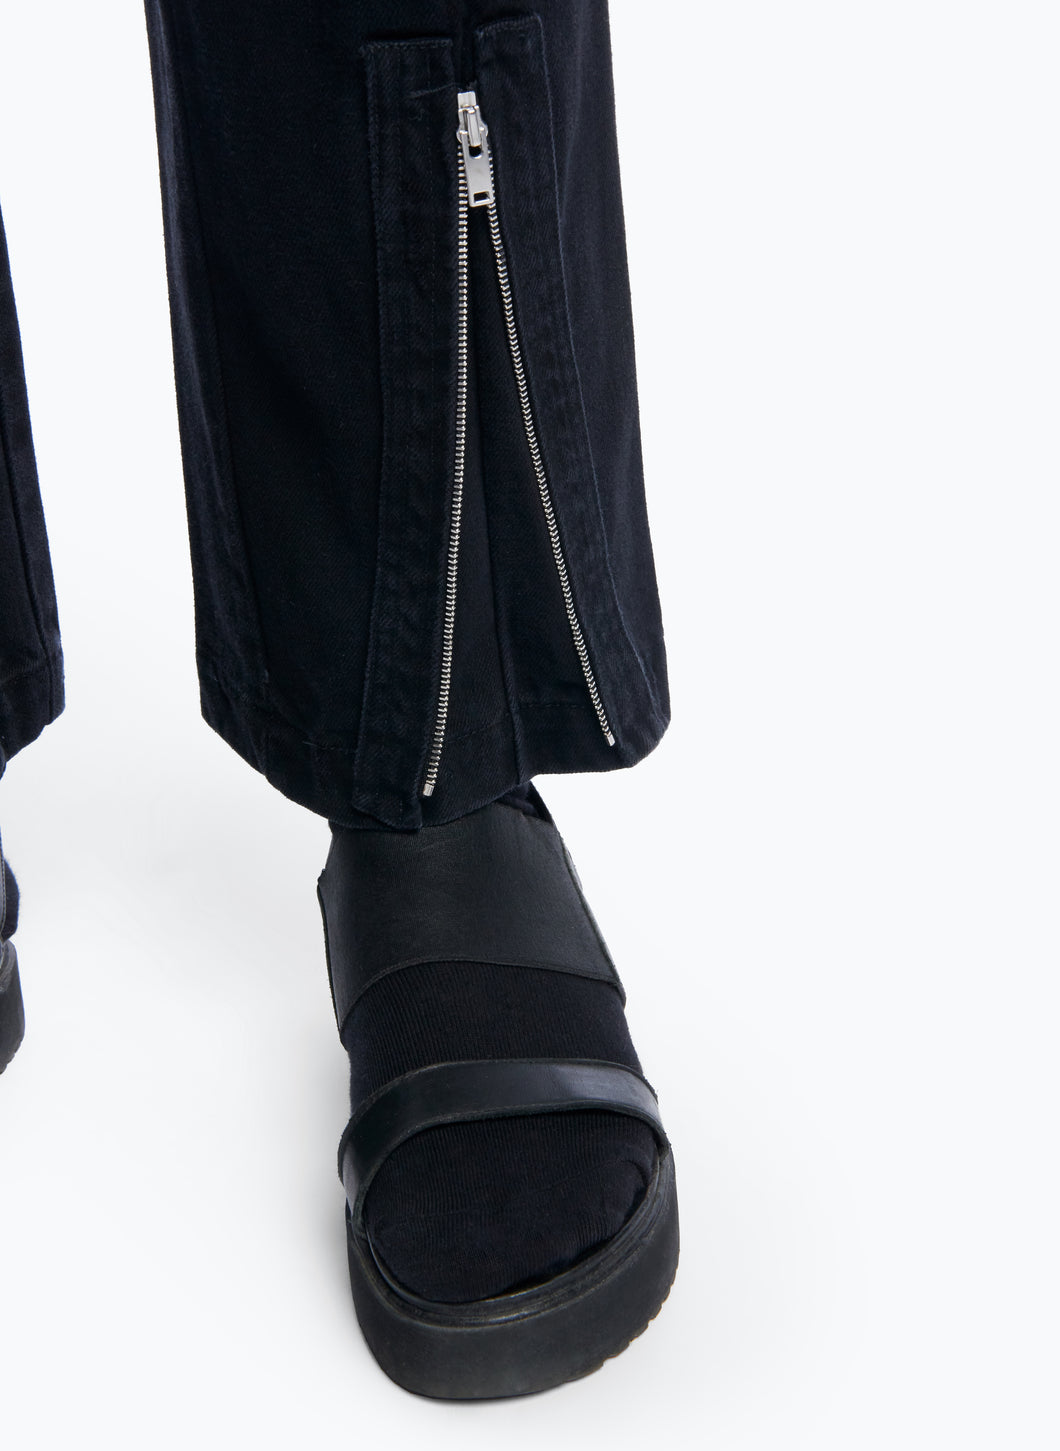 High-Waisted Pants with Multiple Pockets in Black Denim